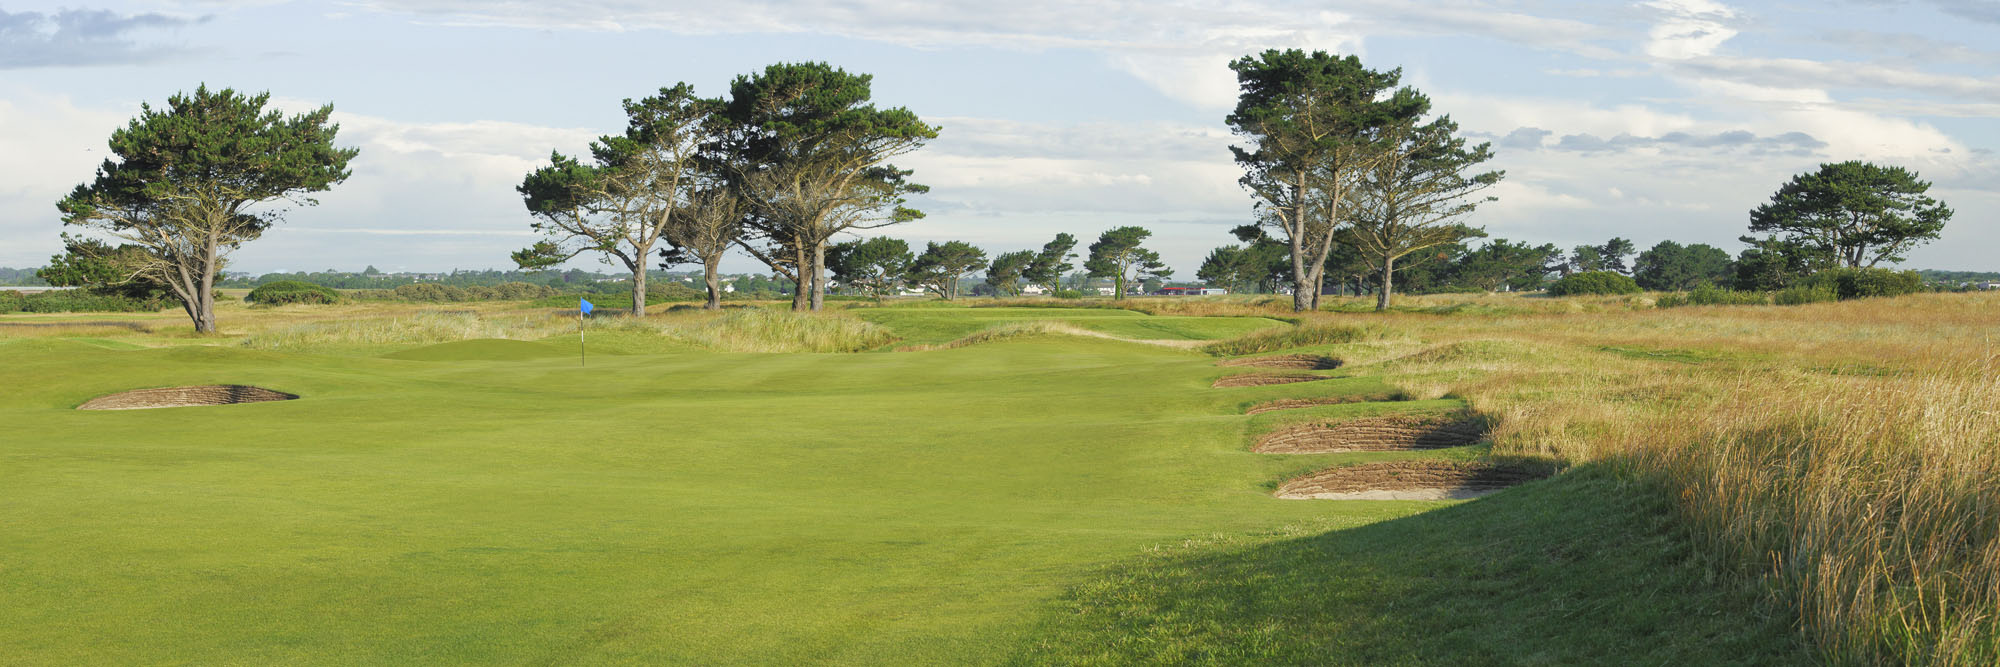 Golf Course Image - Portmarnock No. 13